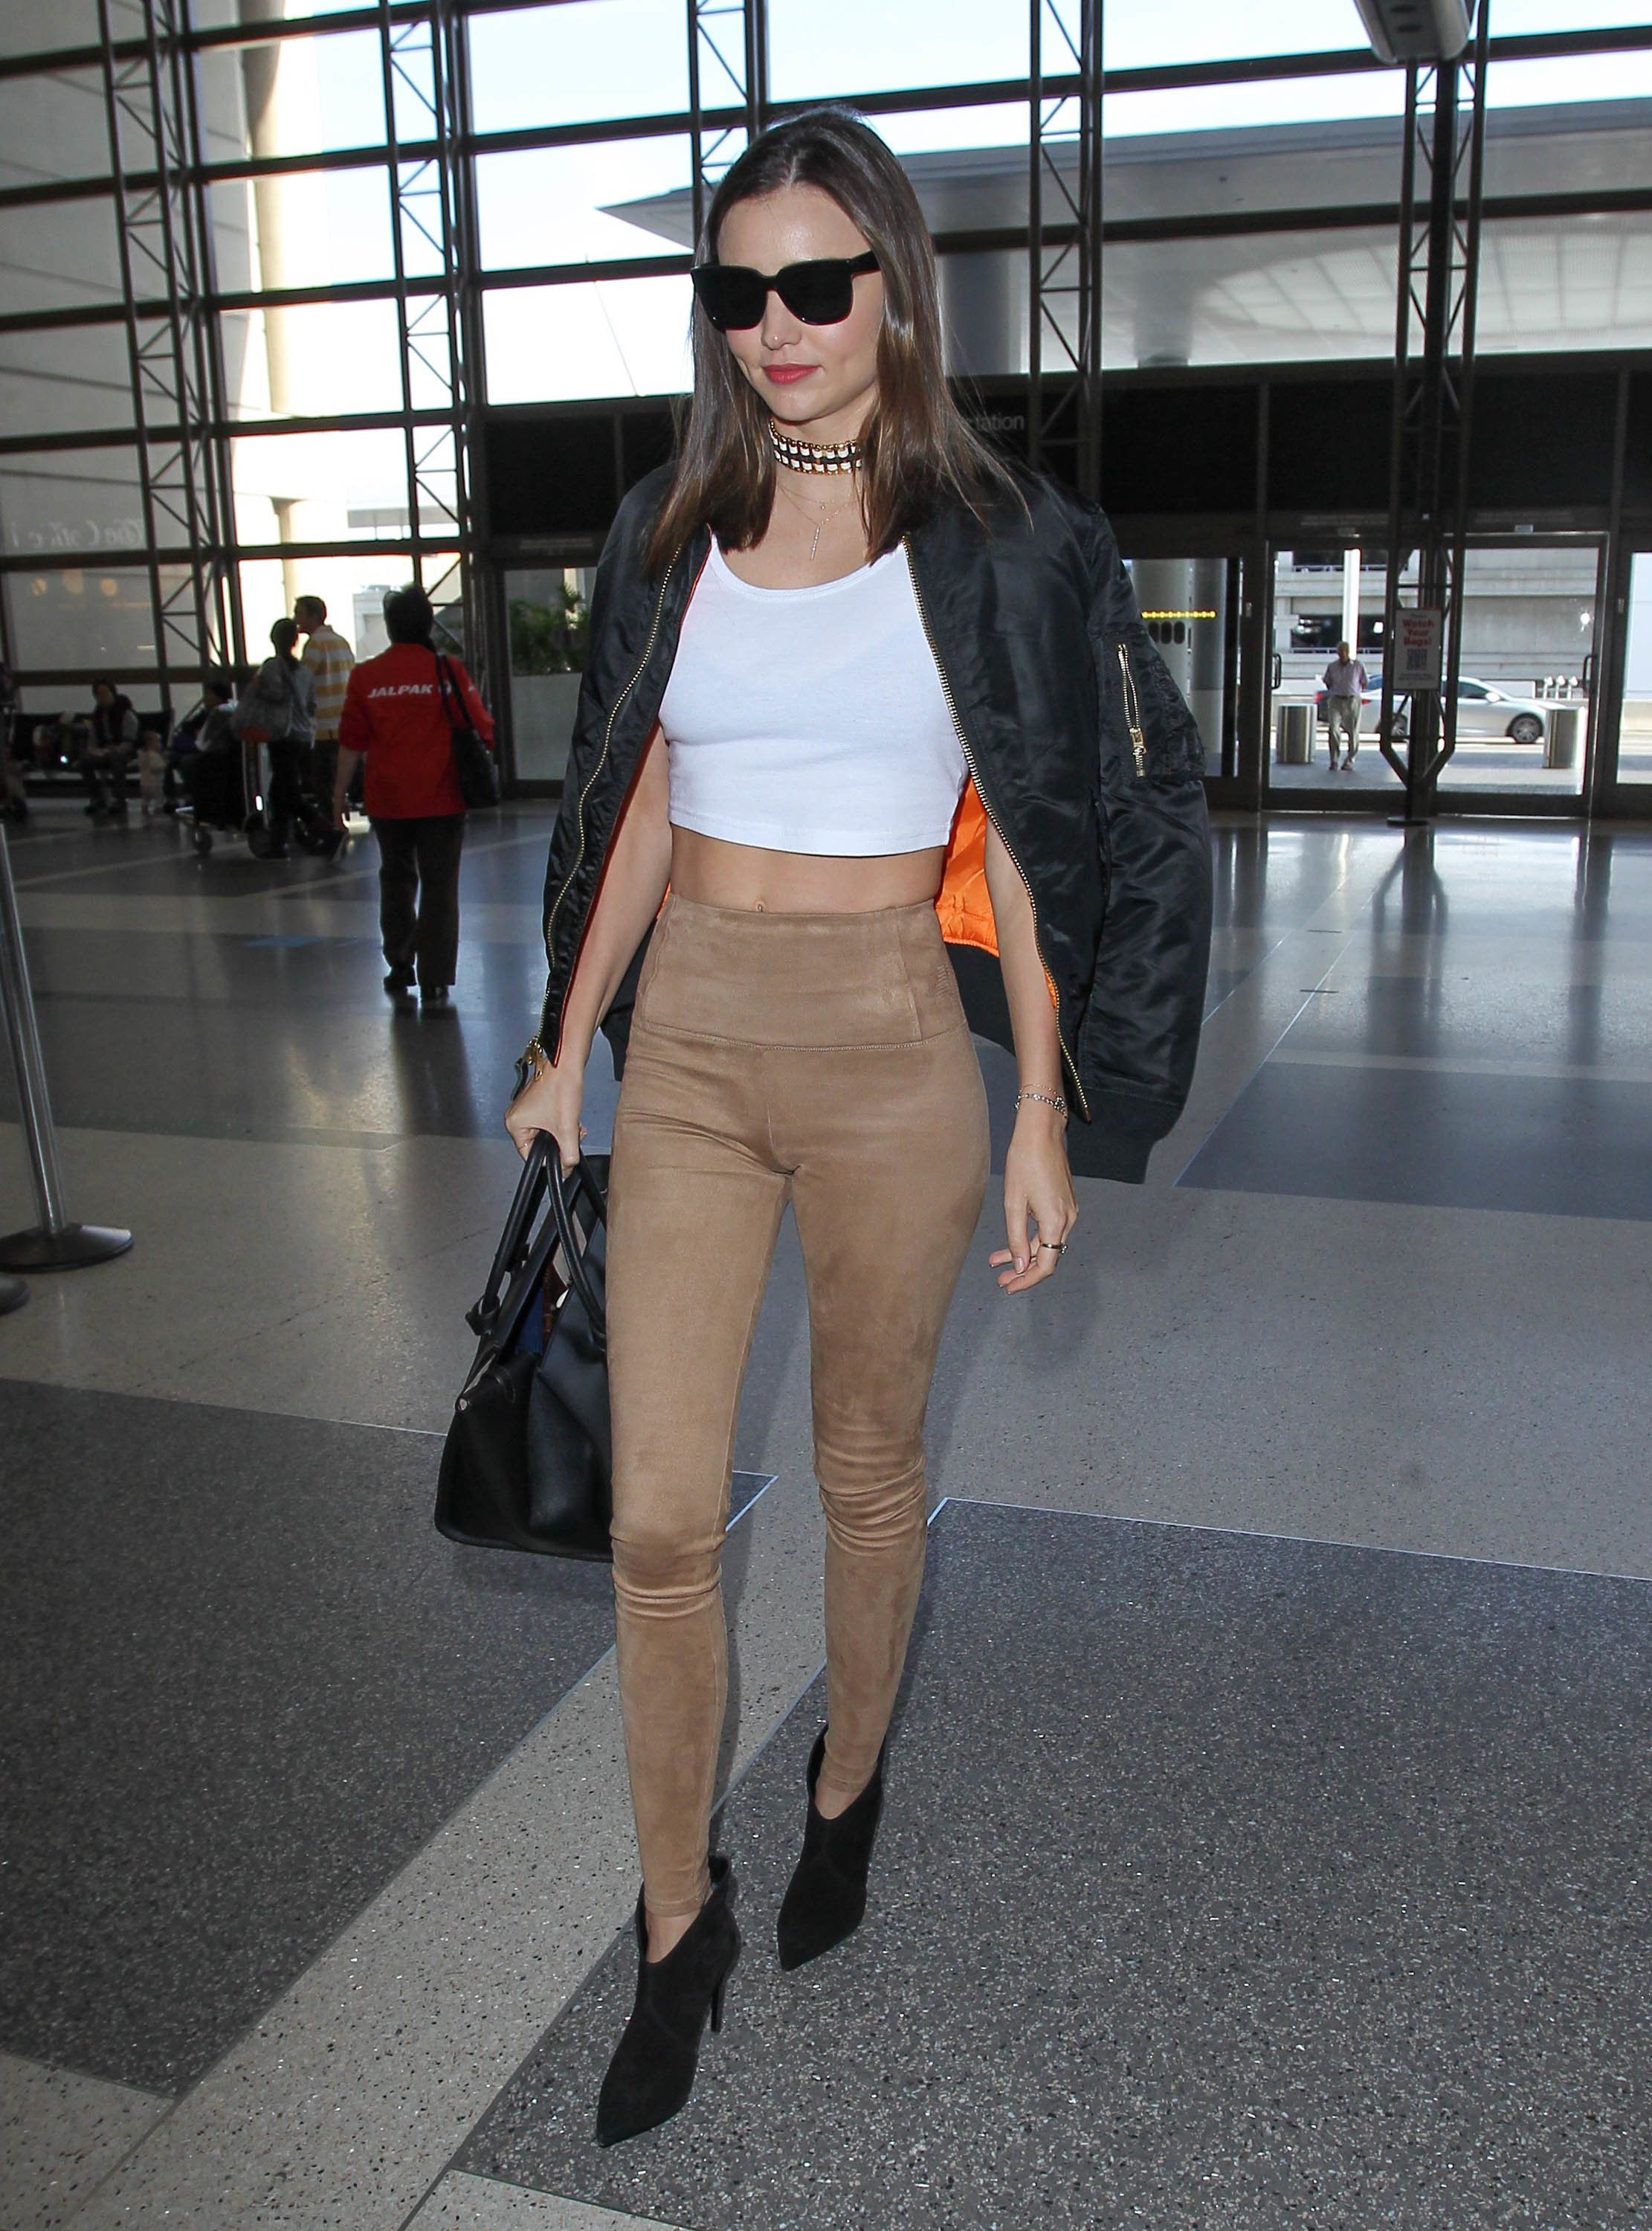 51922773 Model and busy mom Miranda Kerr departing on a flight at LAX airport in Los Angeles, California on December 5, 2015. FameFlynet, Inc - Beverly Hills, CA, USA - +1 (818) 307-4813